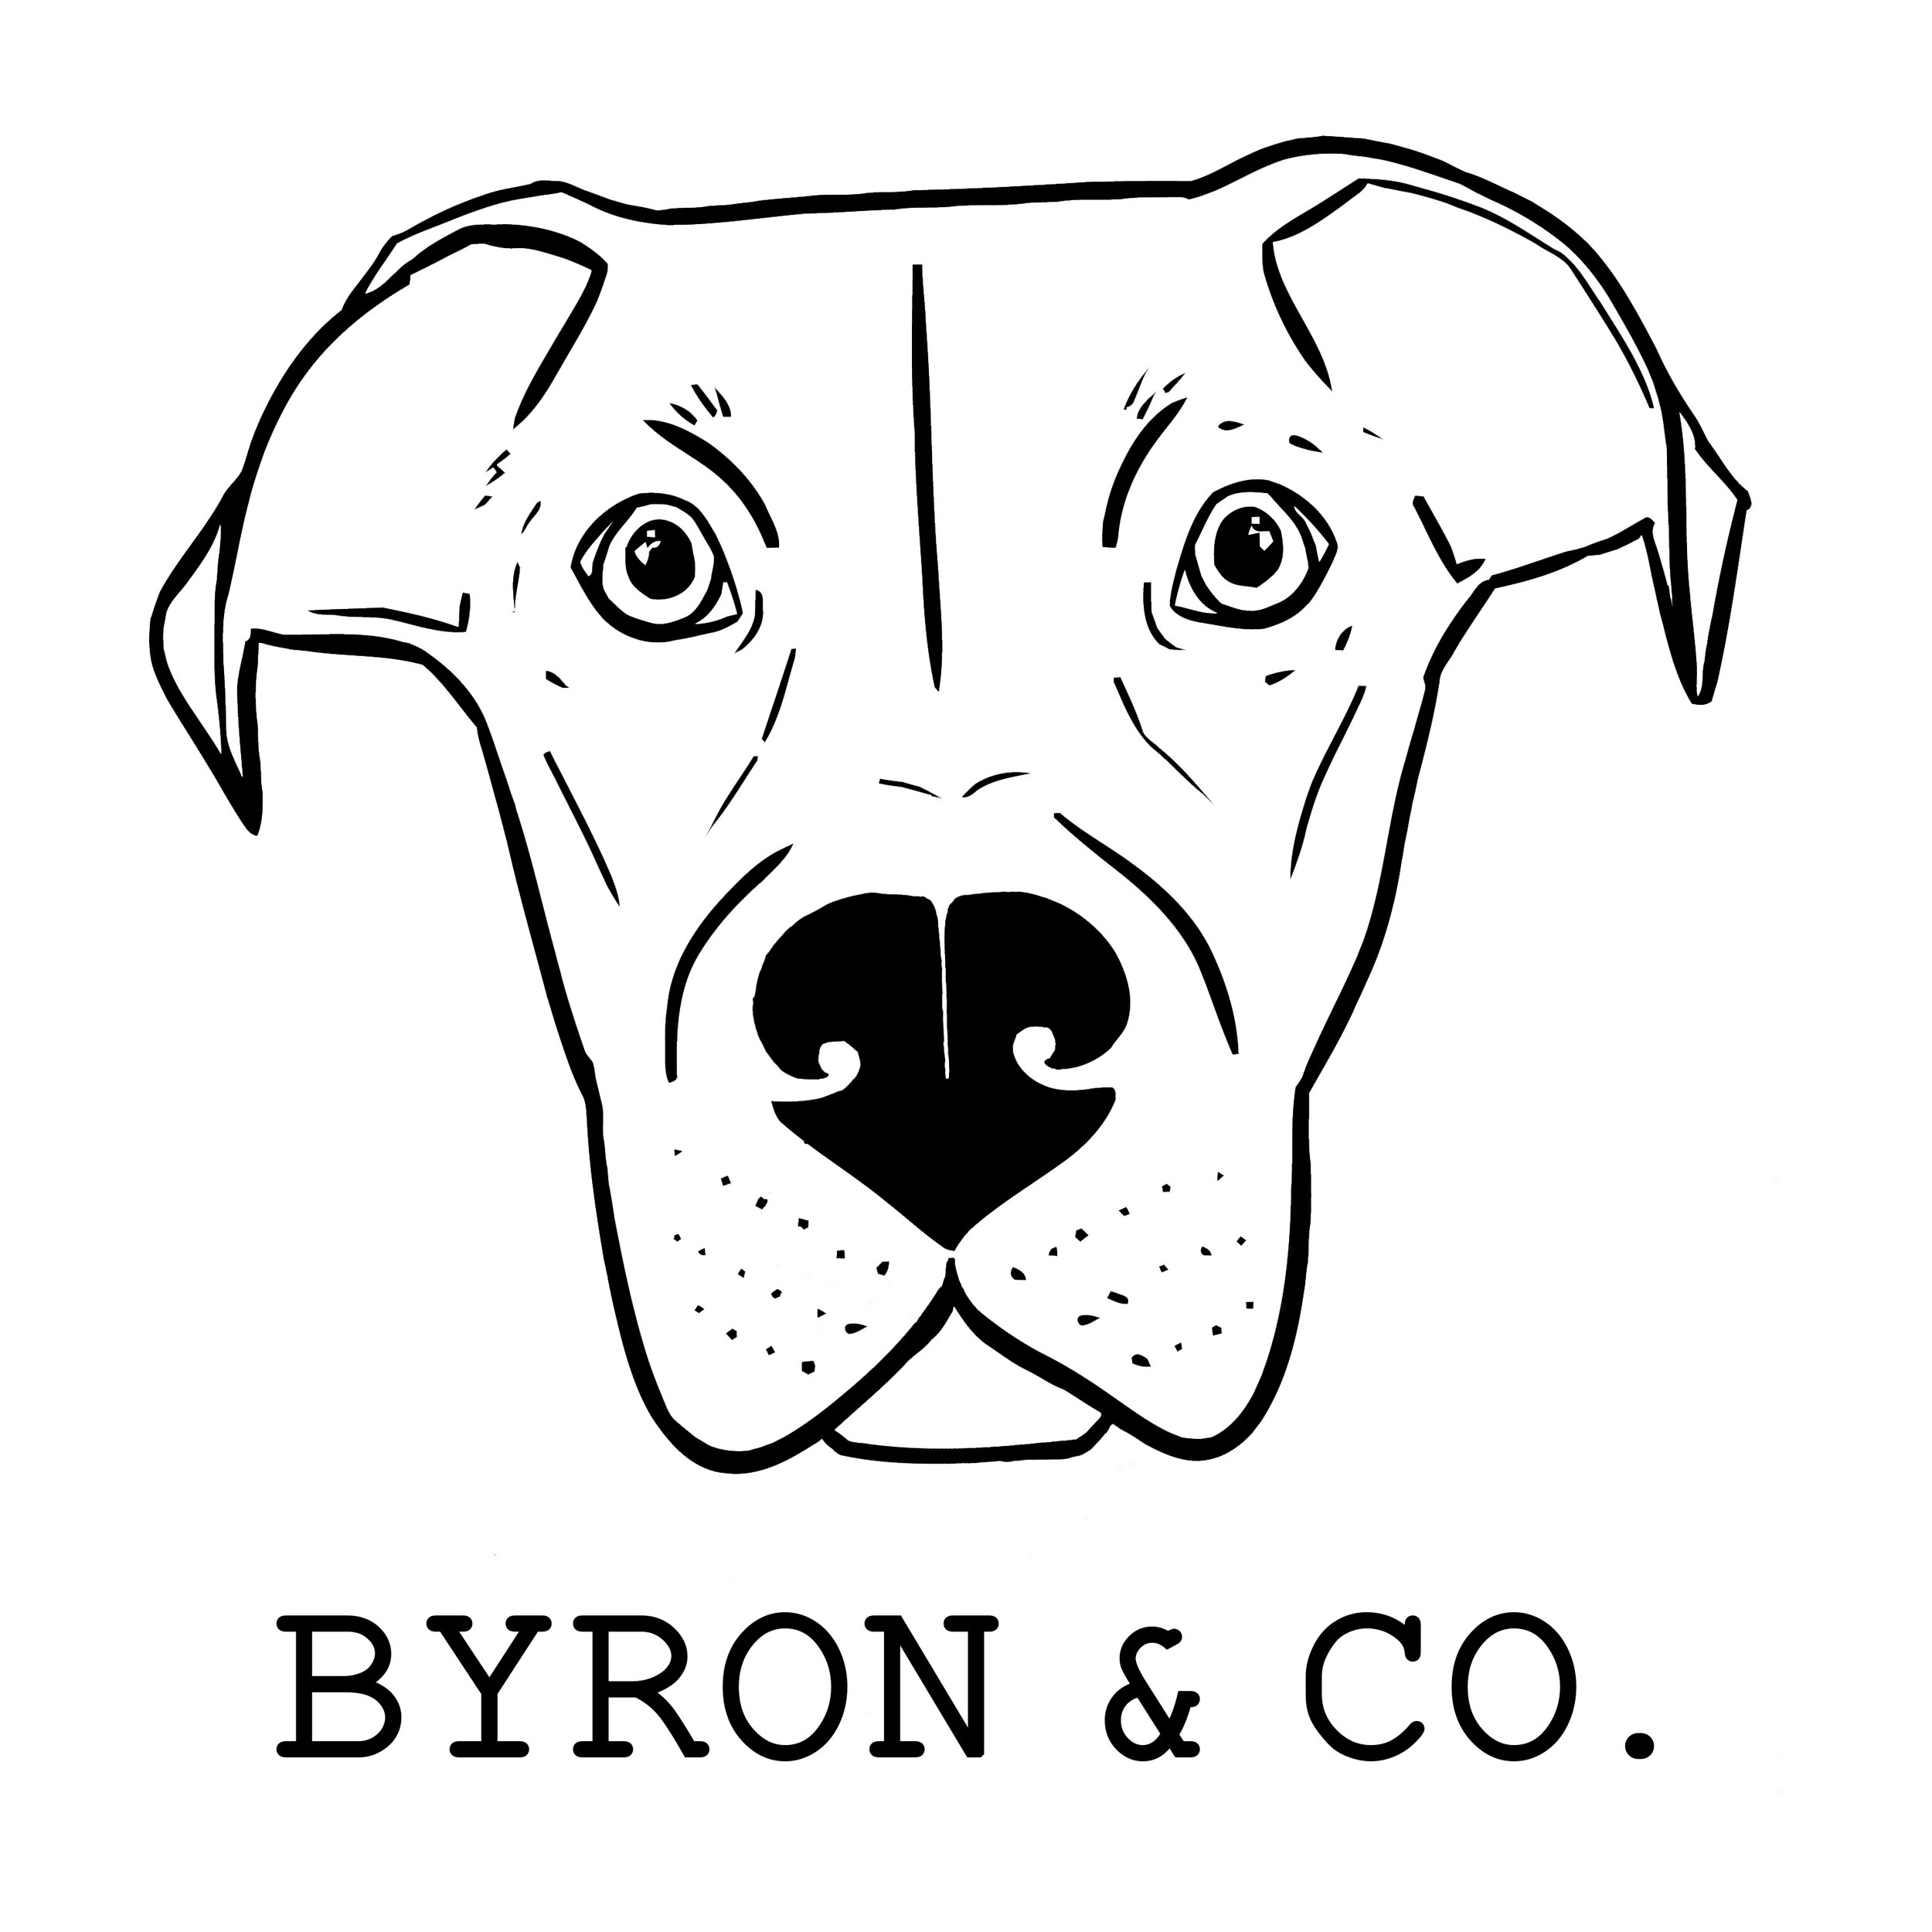 Byron & Co.